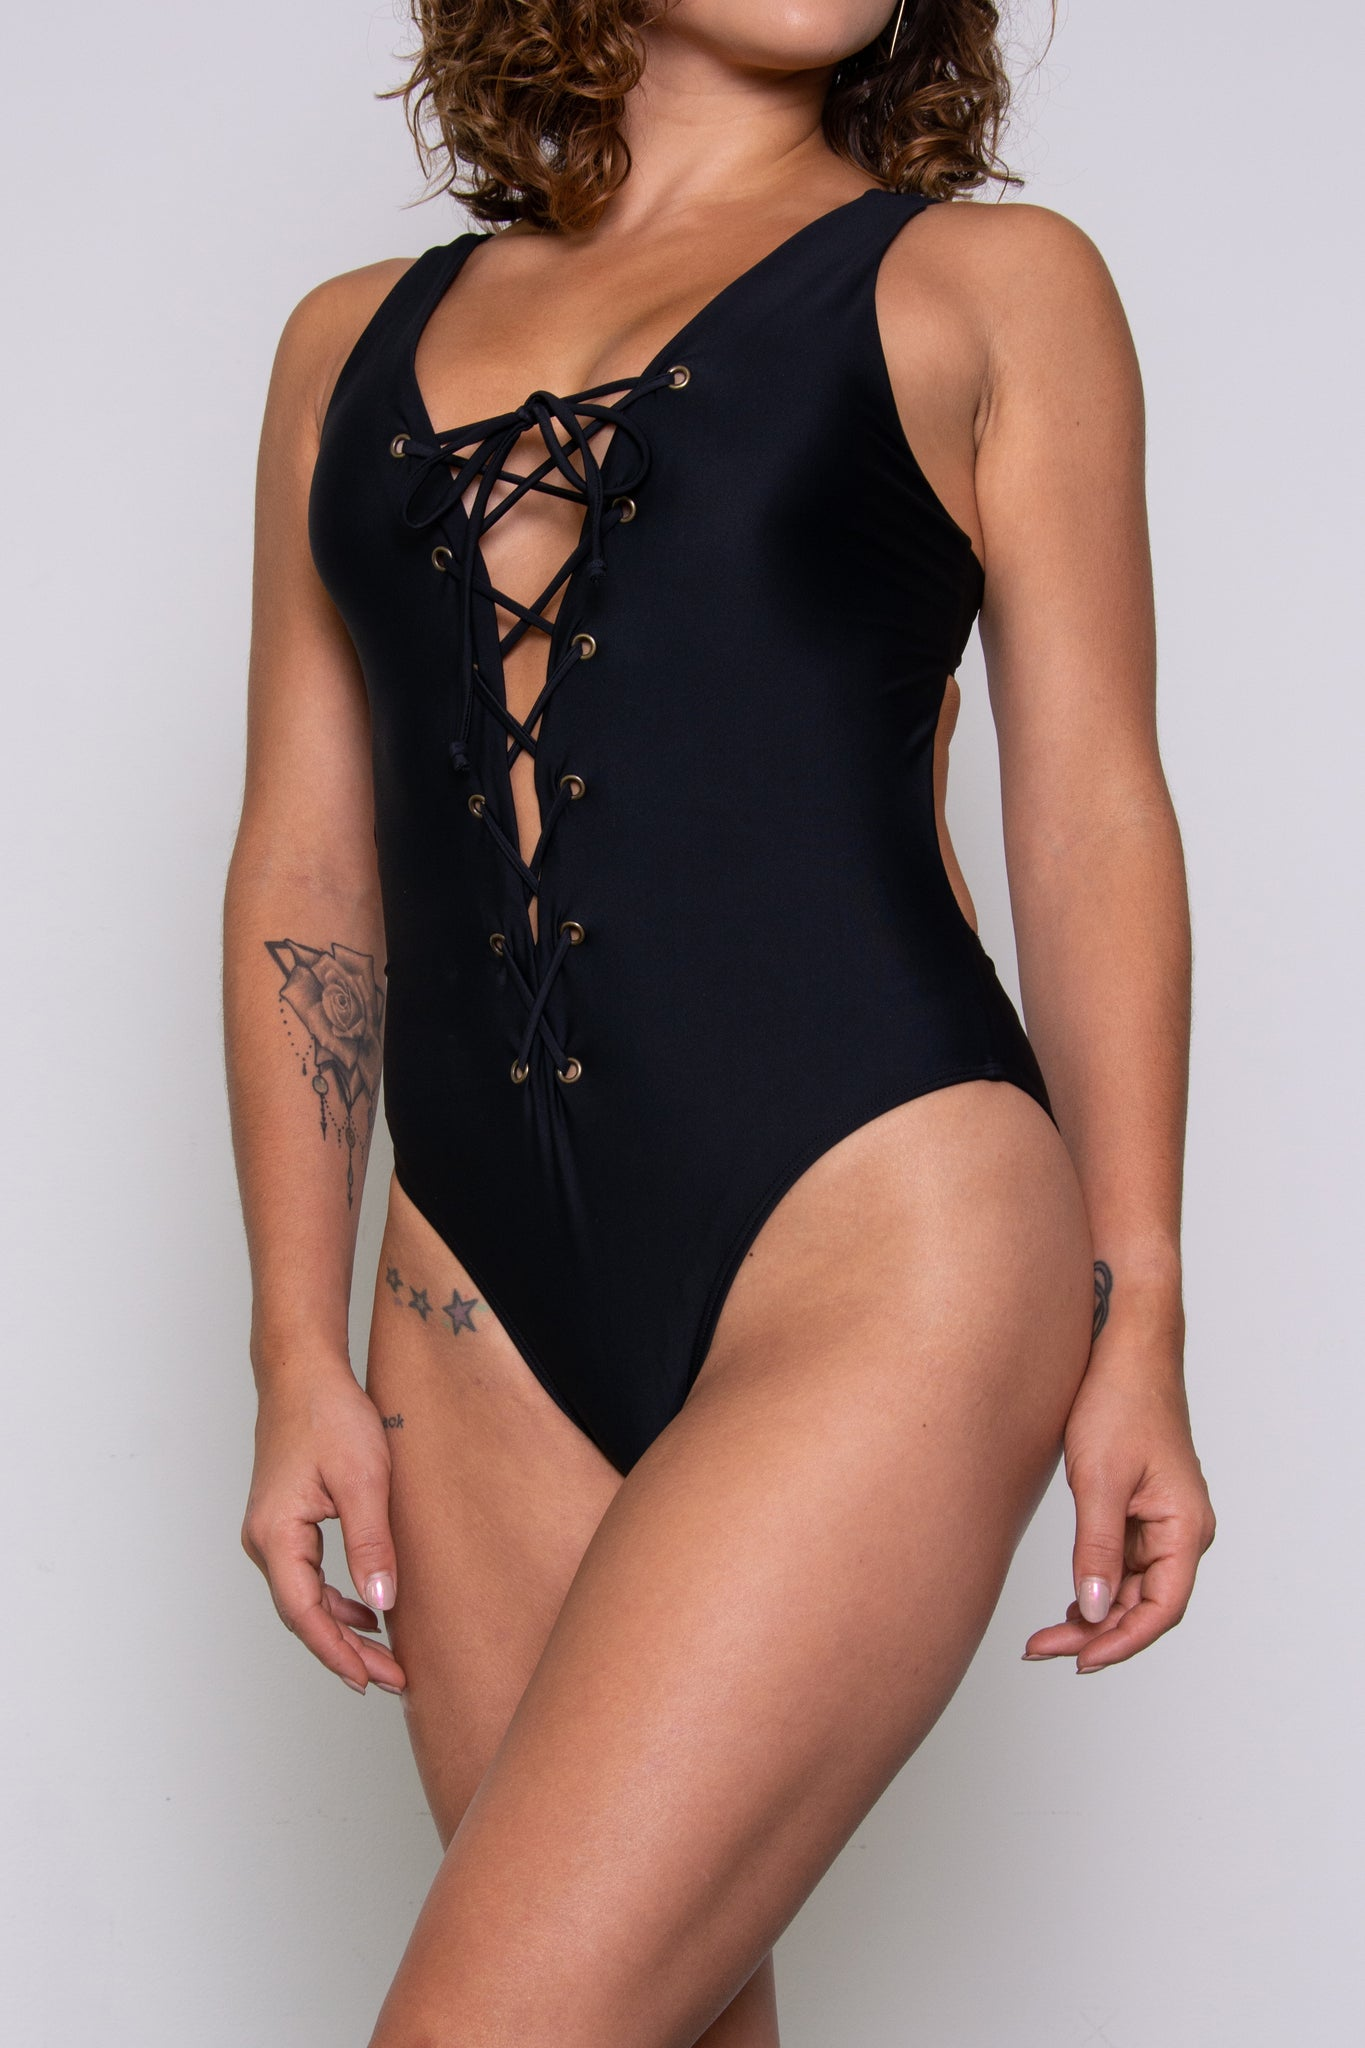 Claudia Renee Bodysuit - Black